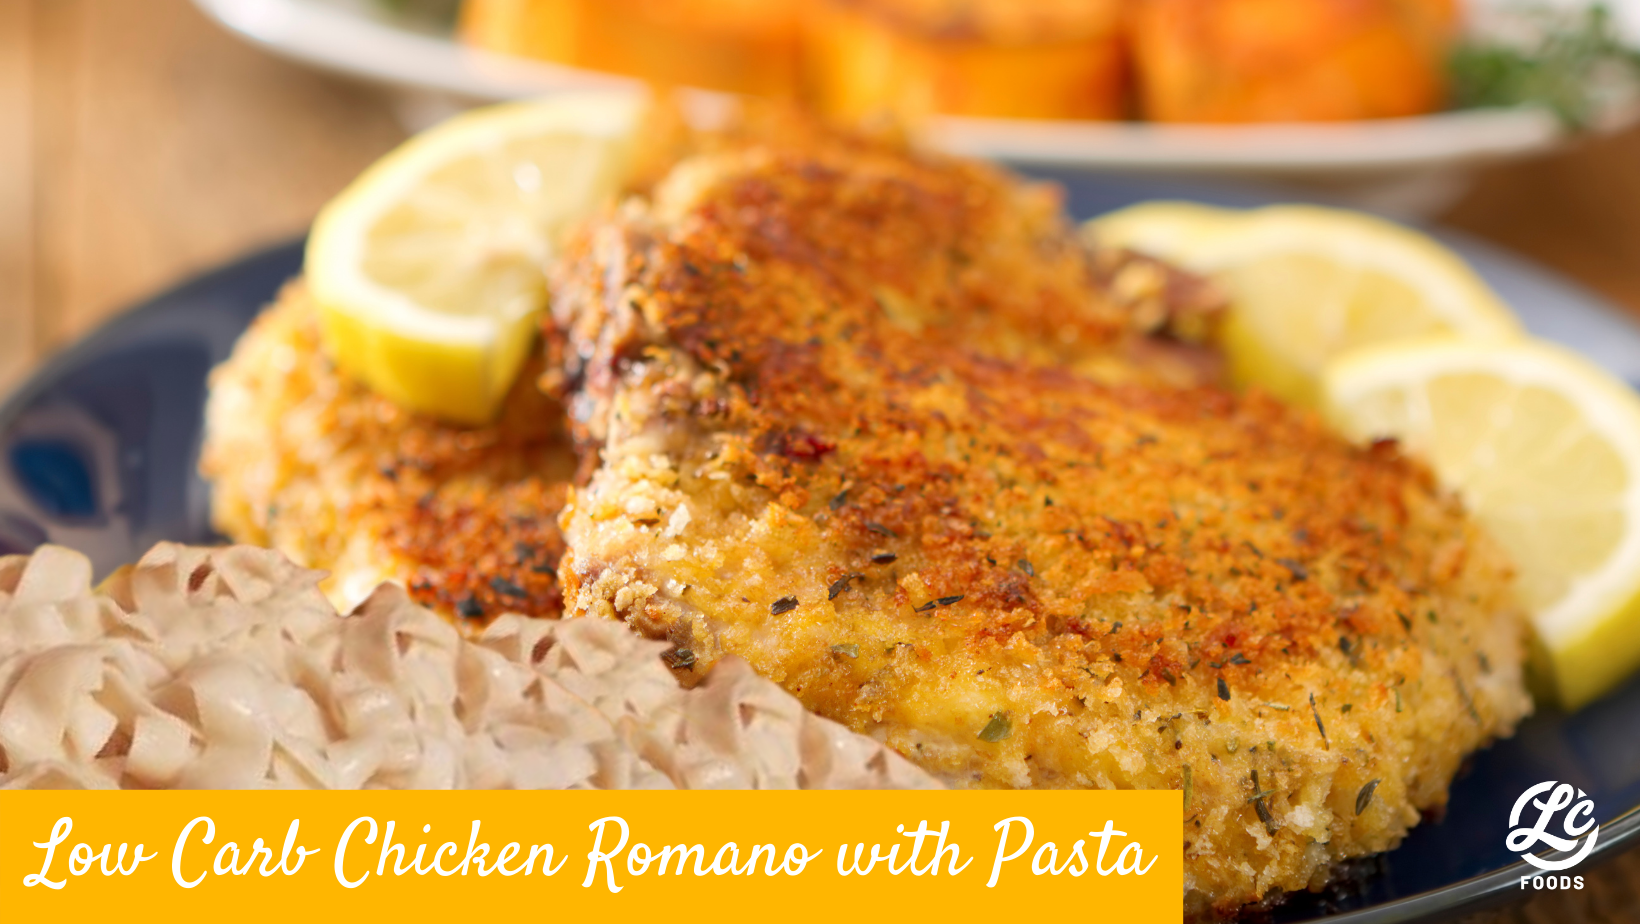 Thumbnail for Low Carb Chicken Romano with Pasta